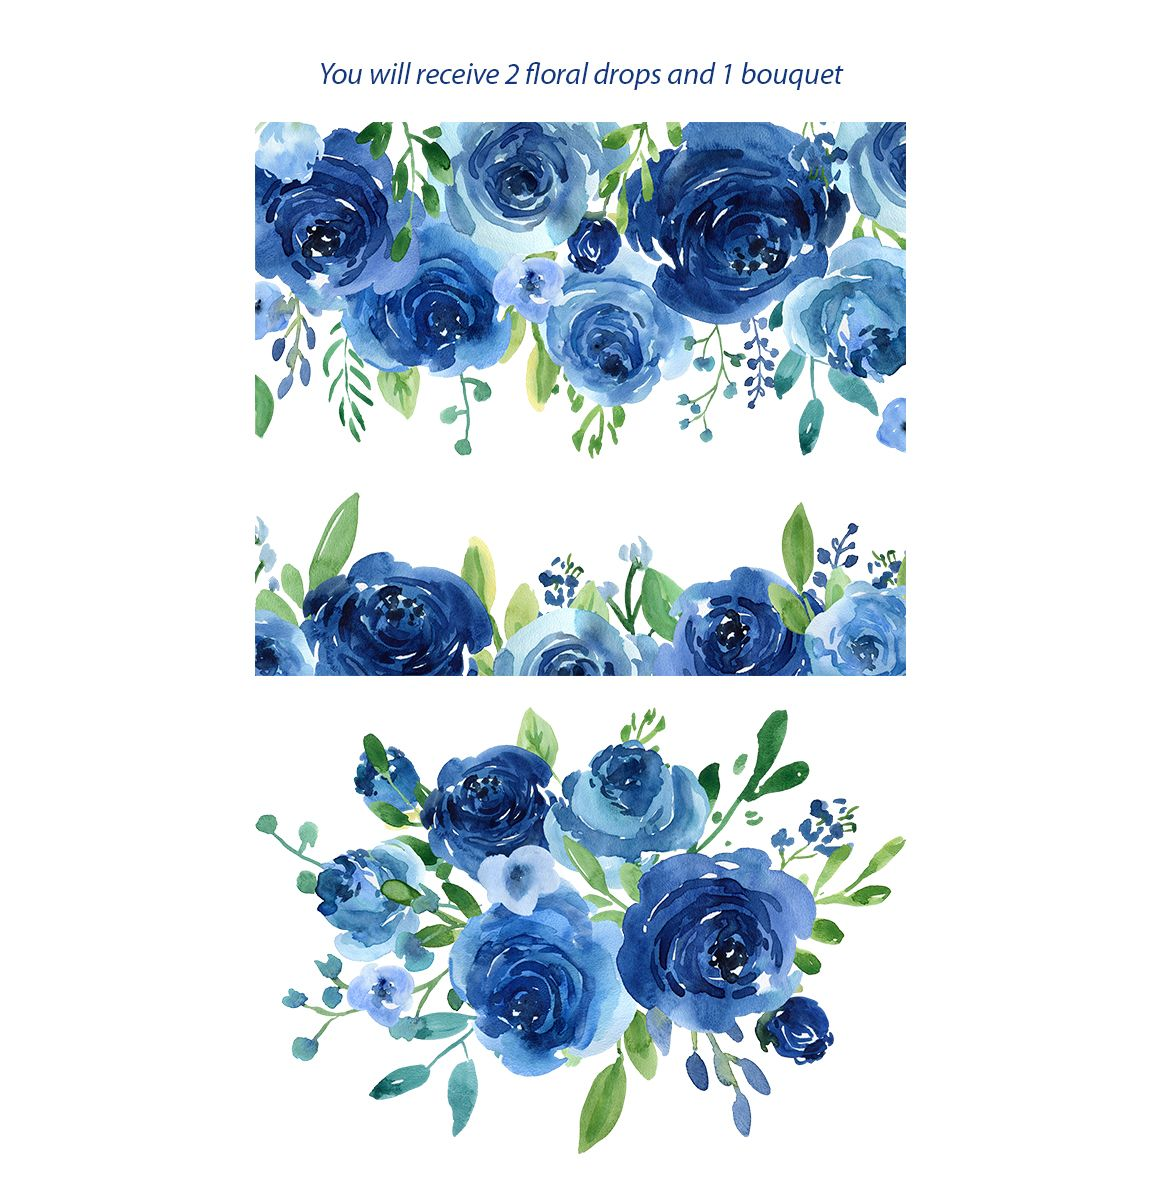 Blue Watercolor Roses Flowers Leaves 83386 Illustrations Design Bundles Flower Drawing Watercolor Flowers Watercolor Rose